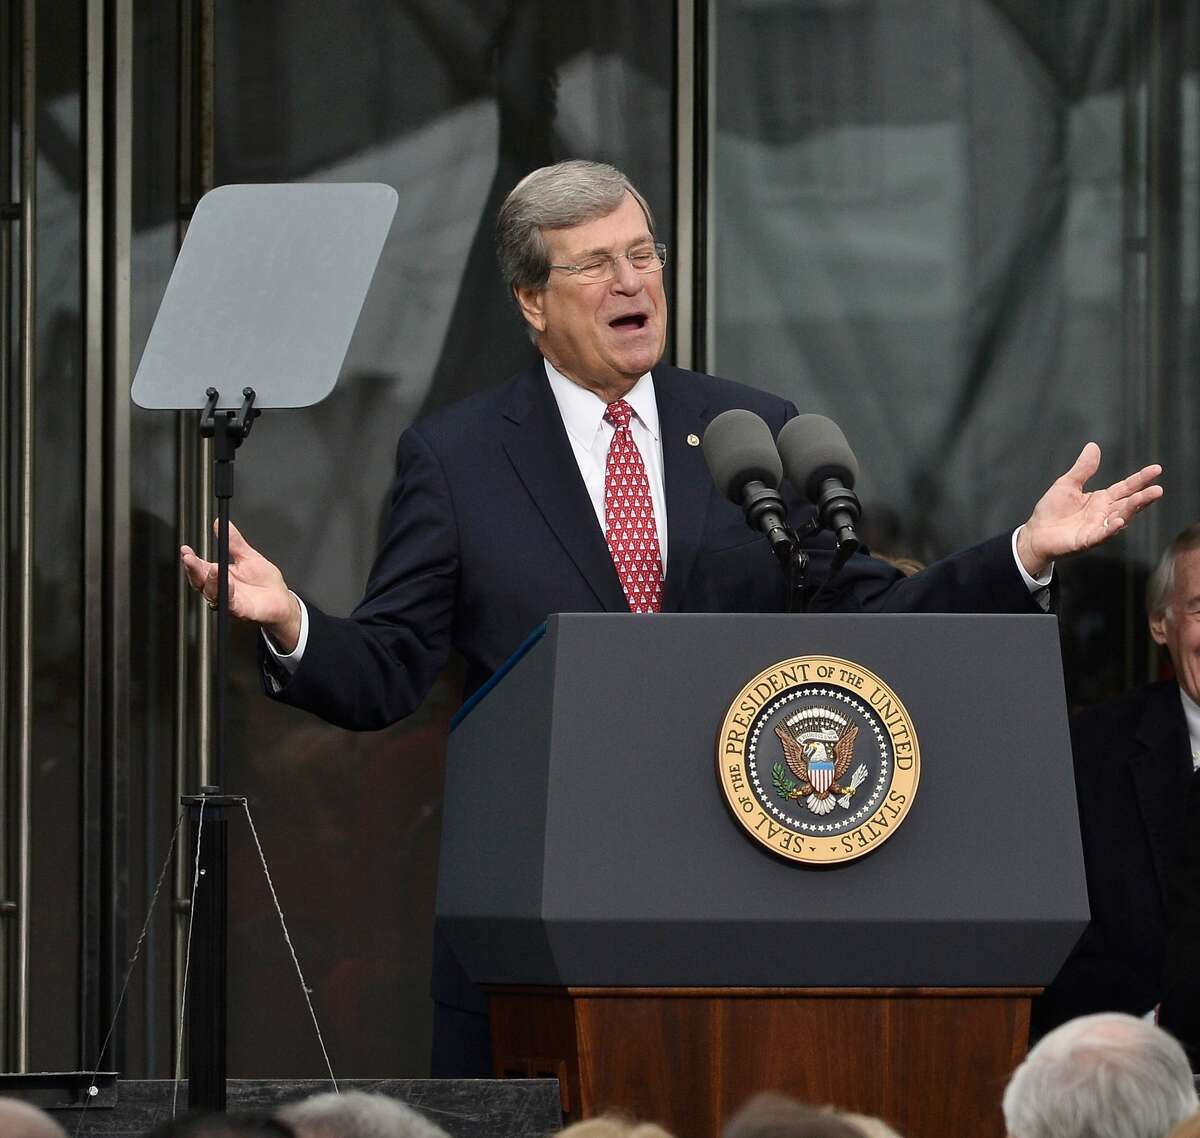 BOSTON, MA - MARCH 30: Former United States Senator Trent Lott speaks at the Dedication Ceremony at the Edward M. Kennedy Institute for the United States Senate on March 30, 2015 in Boston, Massachusetts. (Photo by Paul Marotta/Getty Images) ORG XMIT: 545626227